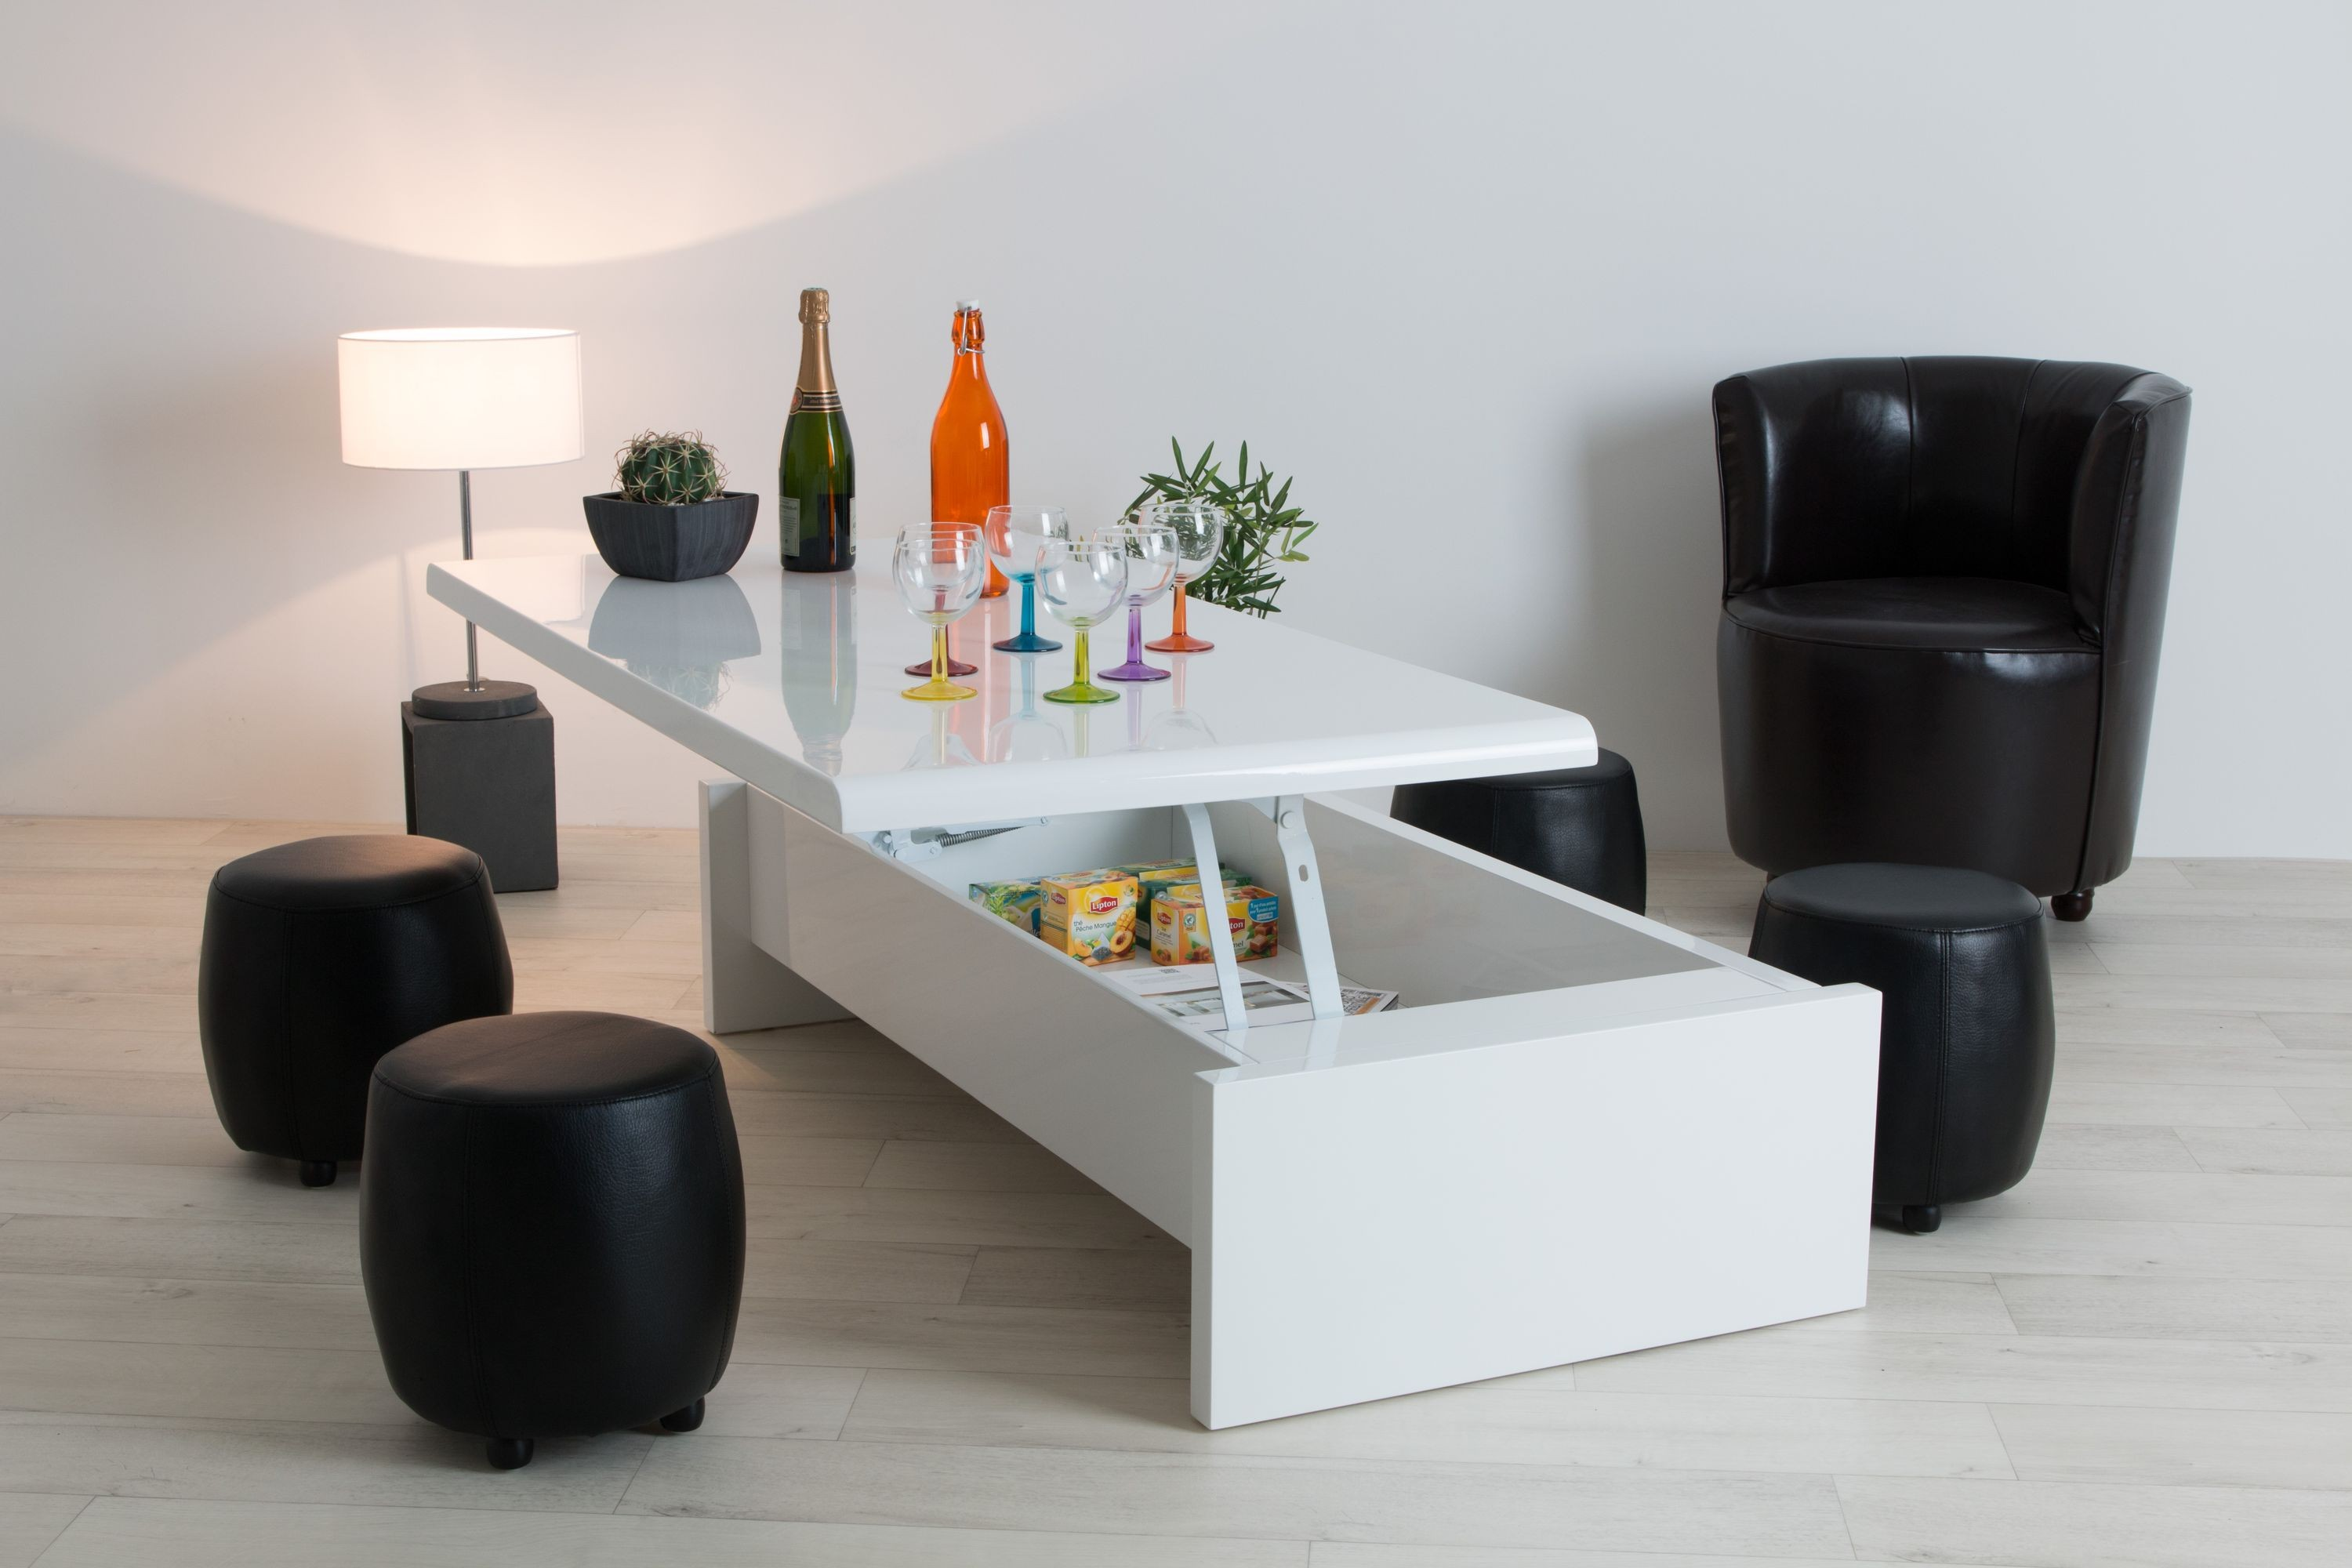 Table Basse Relevable Blanc Laqué Table Basse Relevable à Led Tendancesdesign Fr